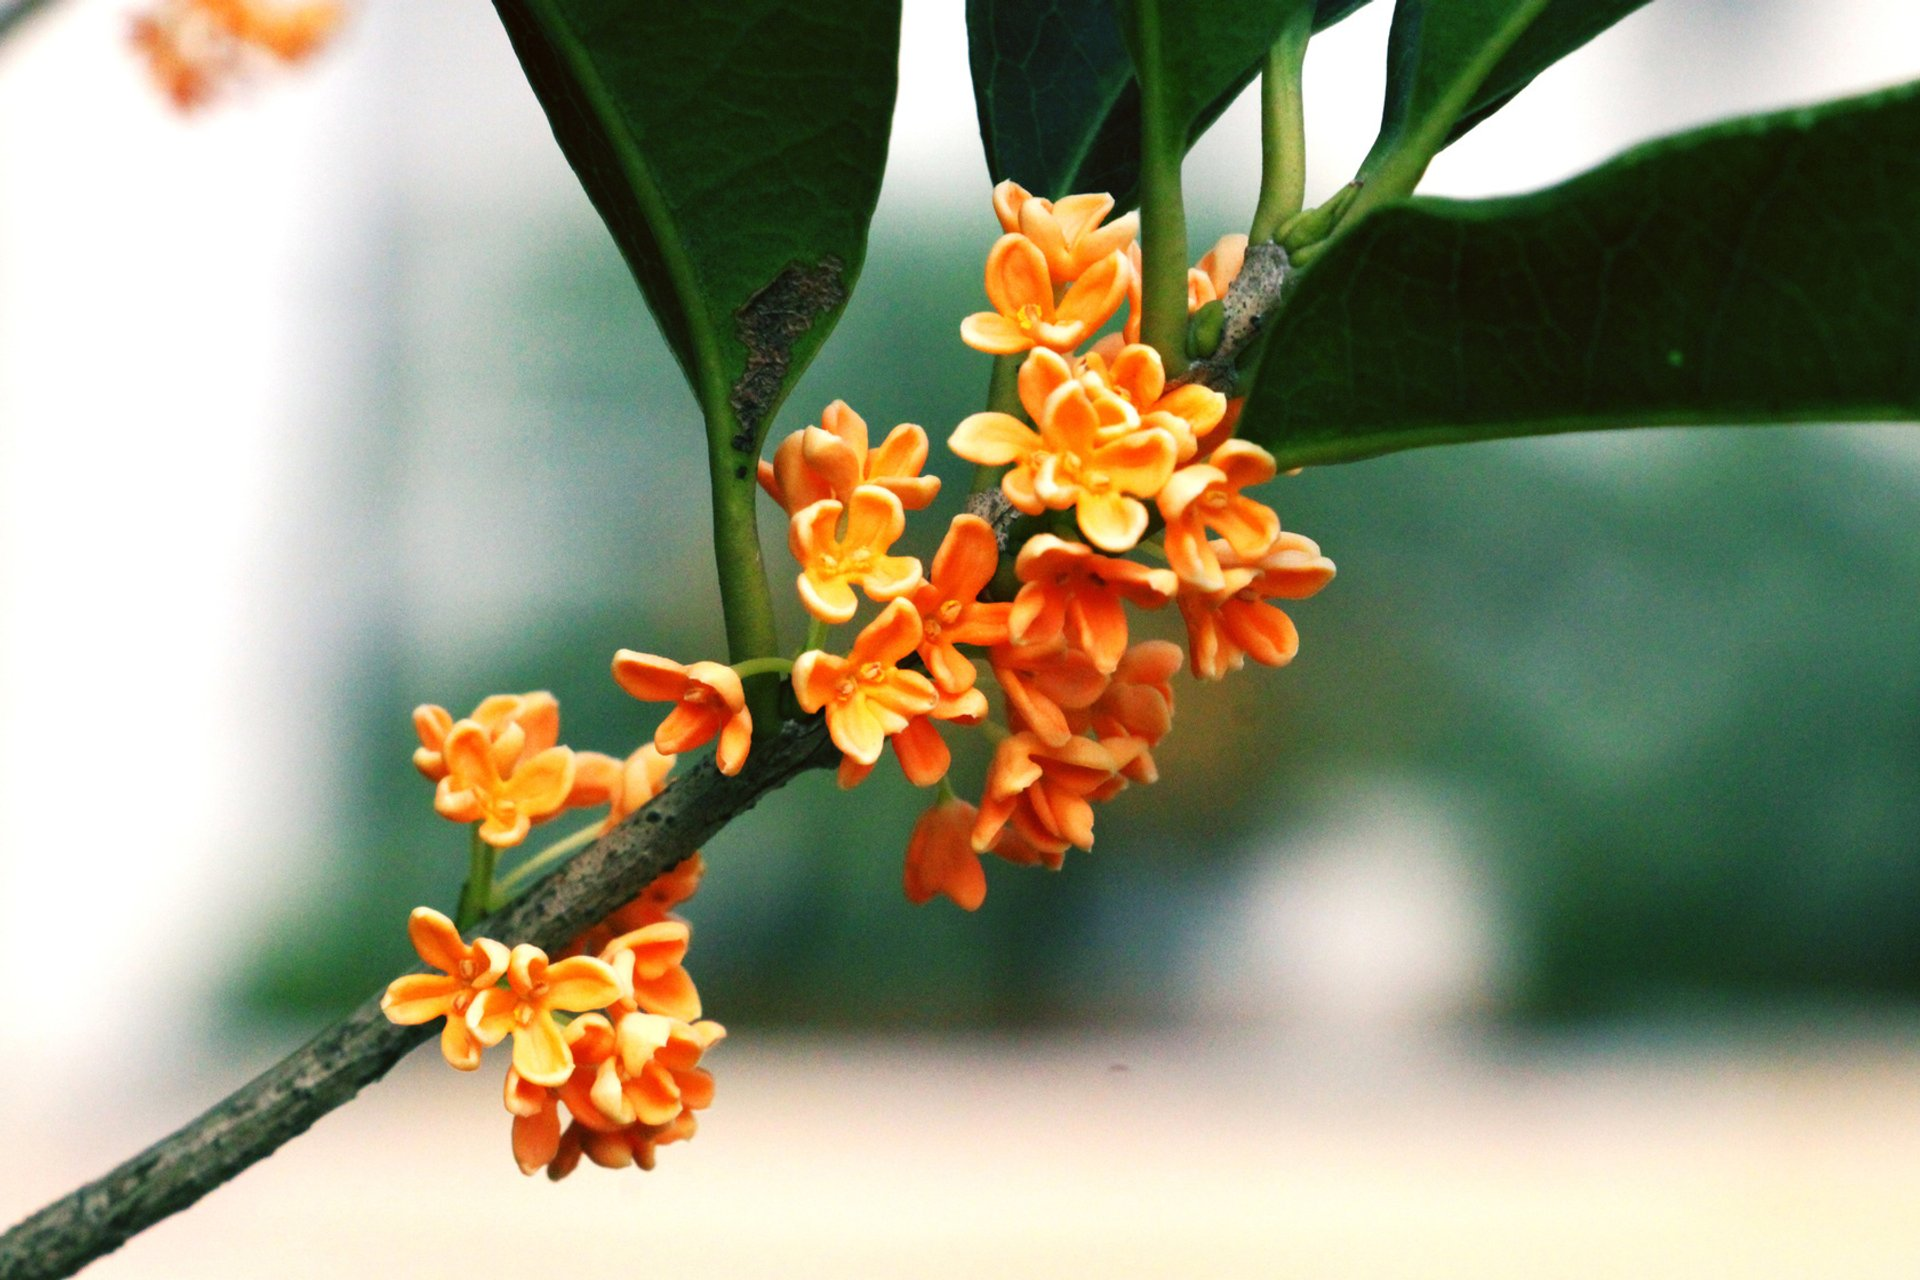 Best time for Sweet Osmanthus in Bloom in China 2020